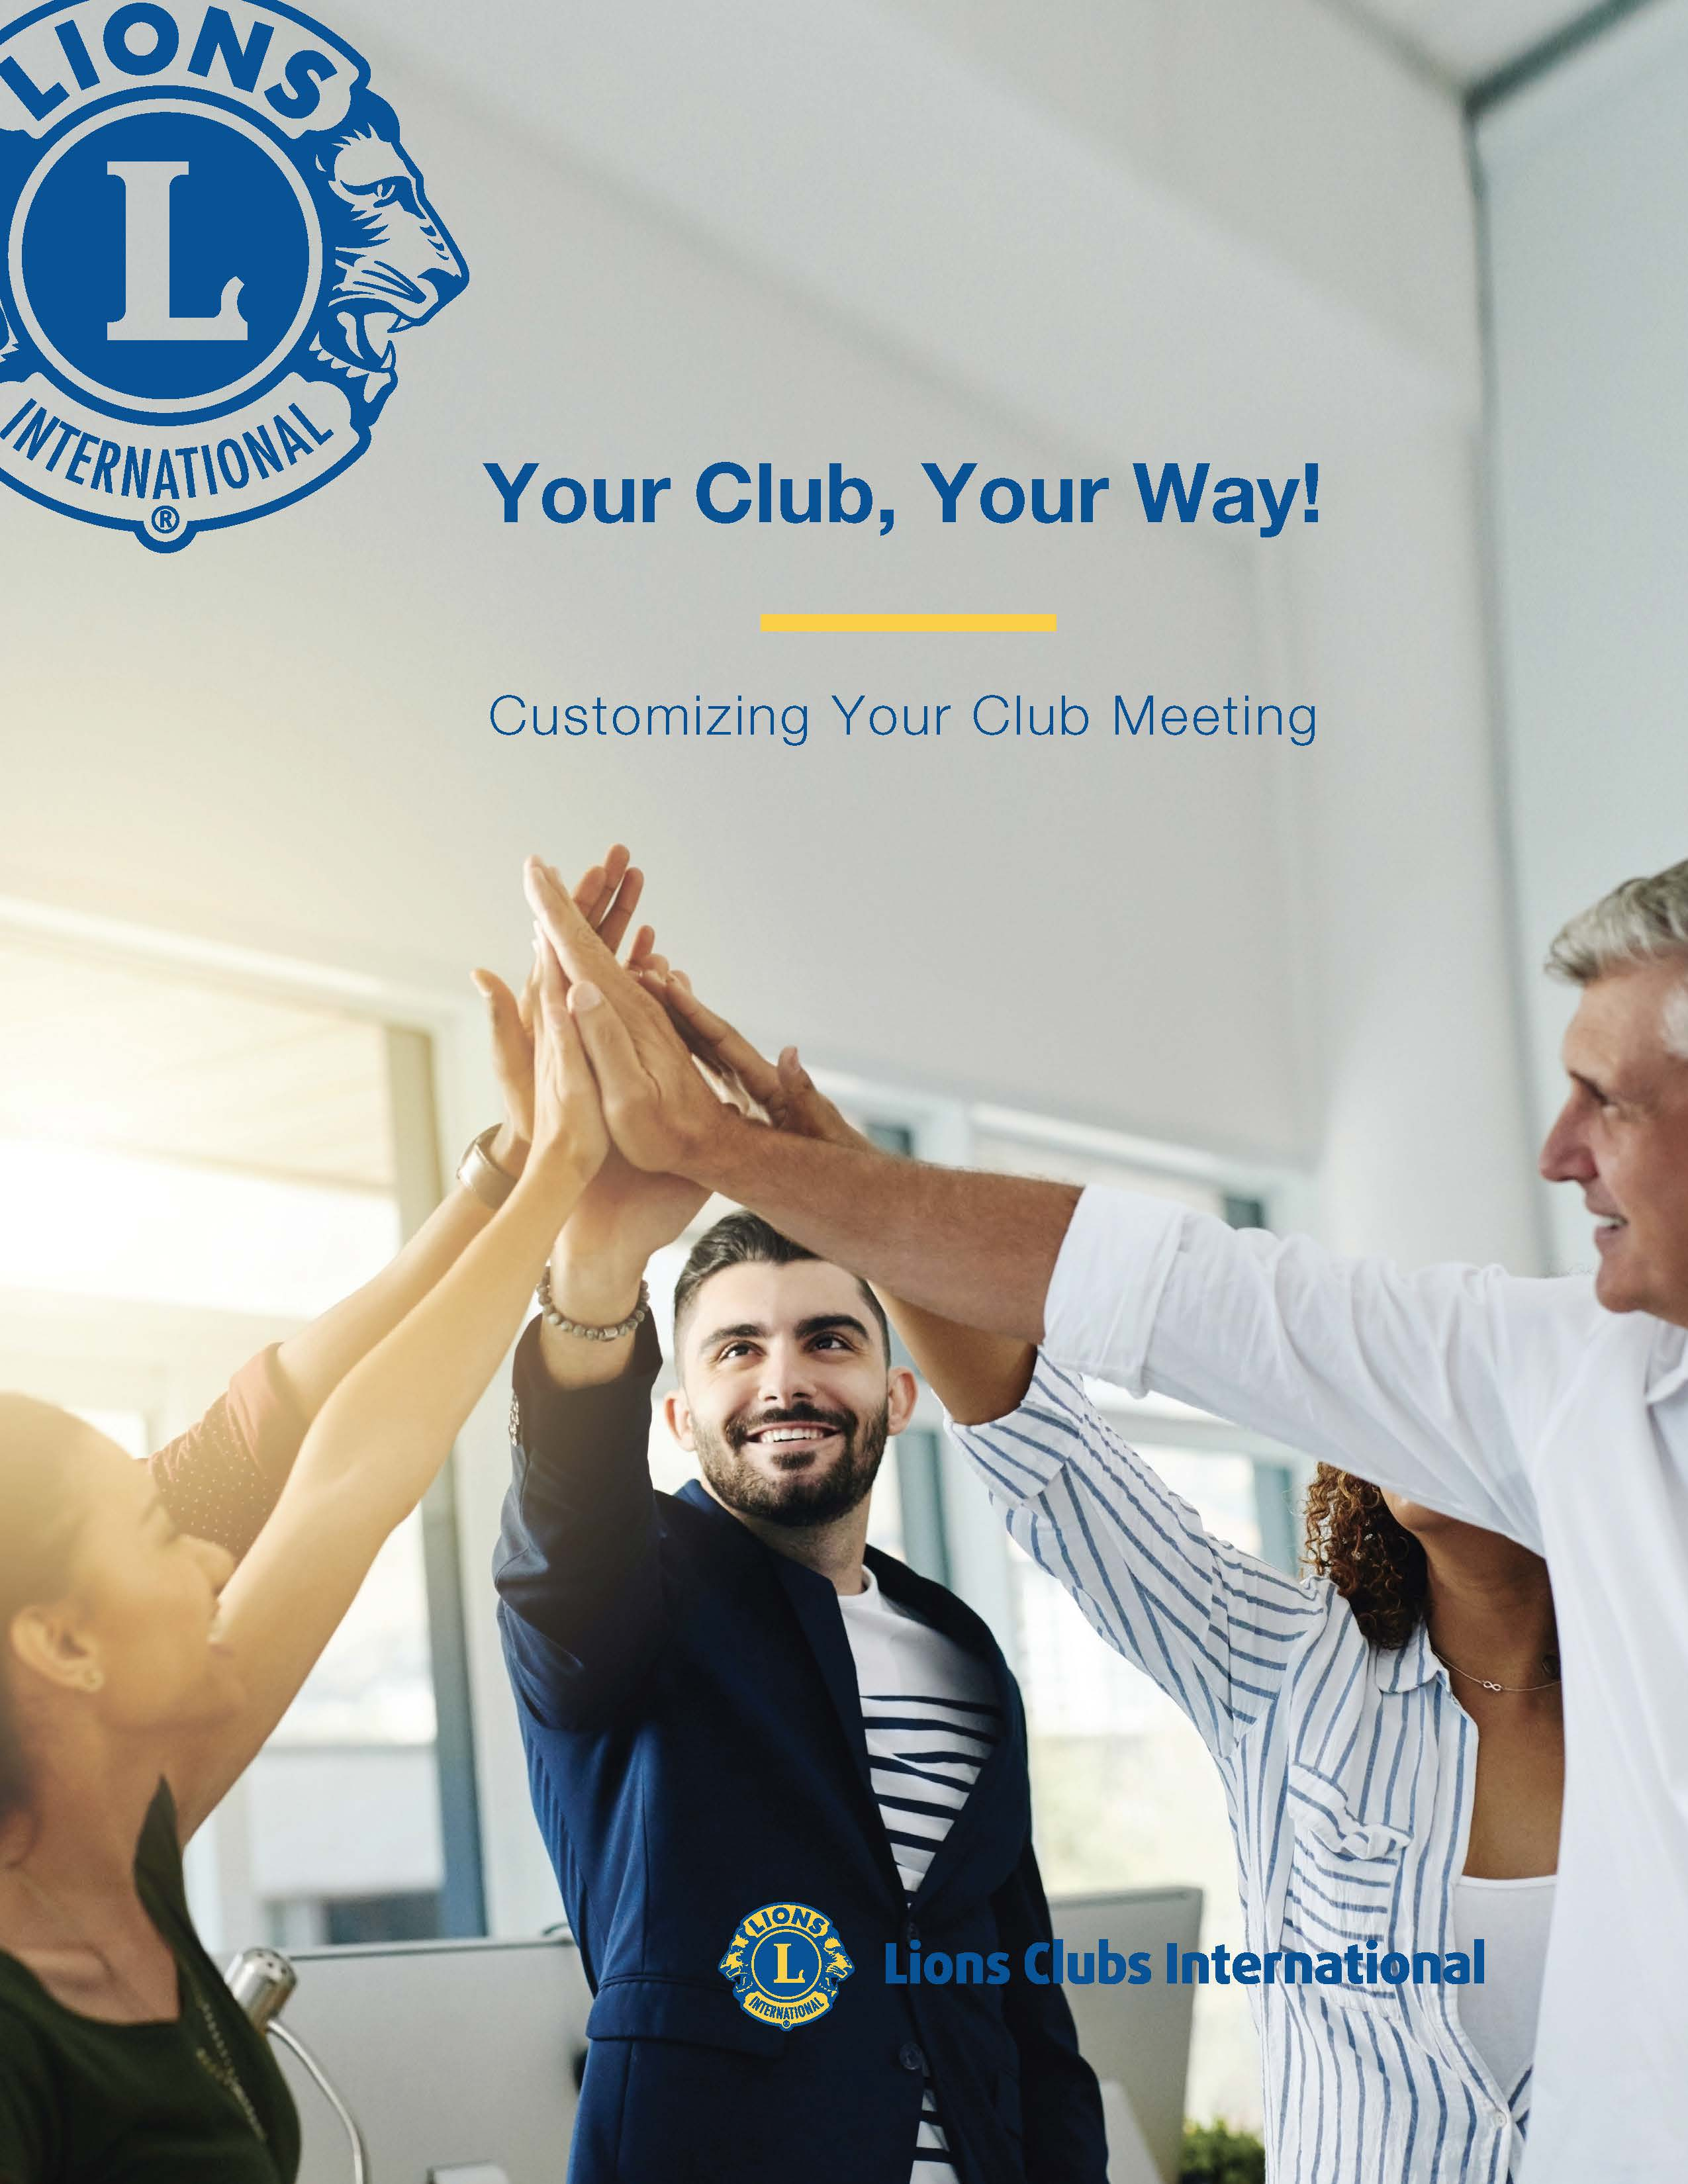 Link to Your Club, Your Way!